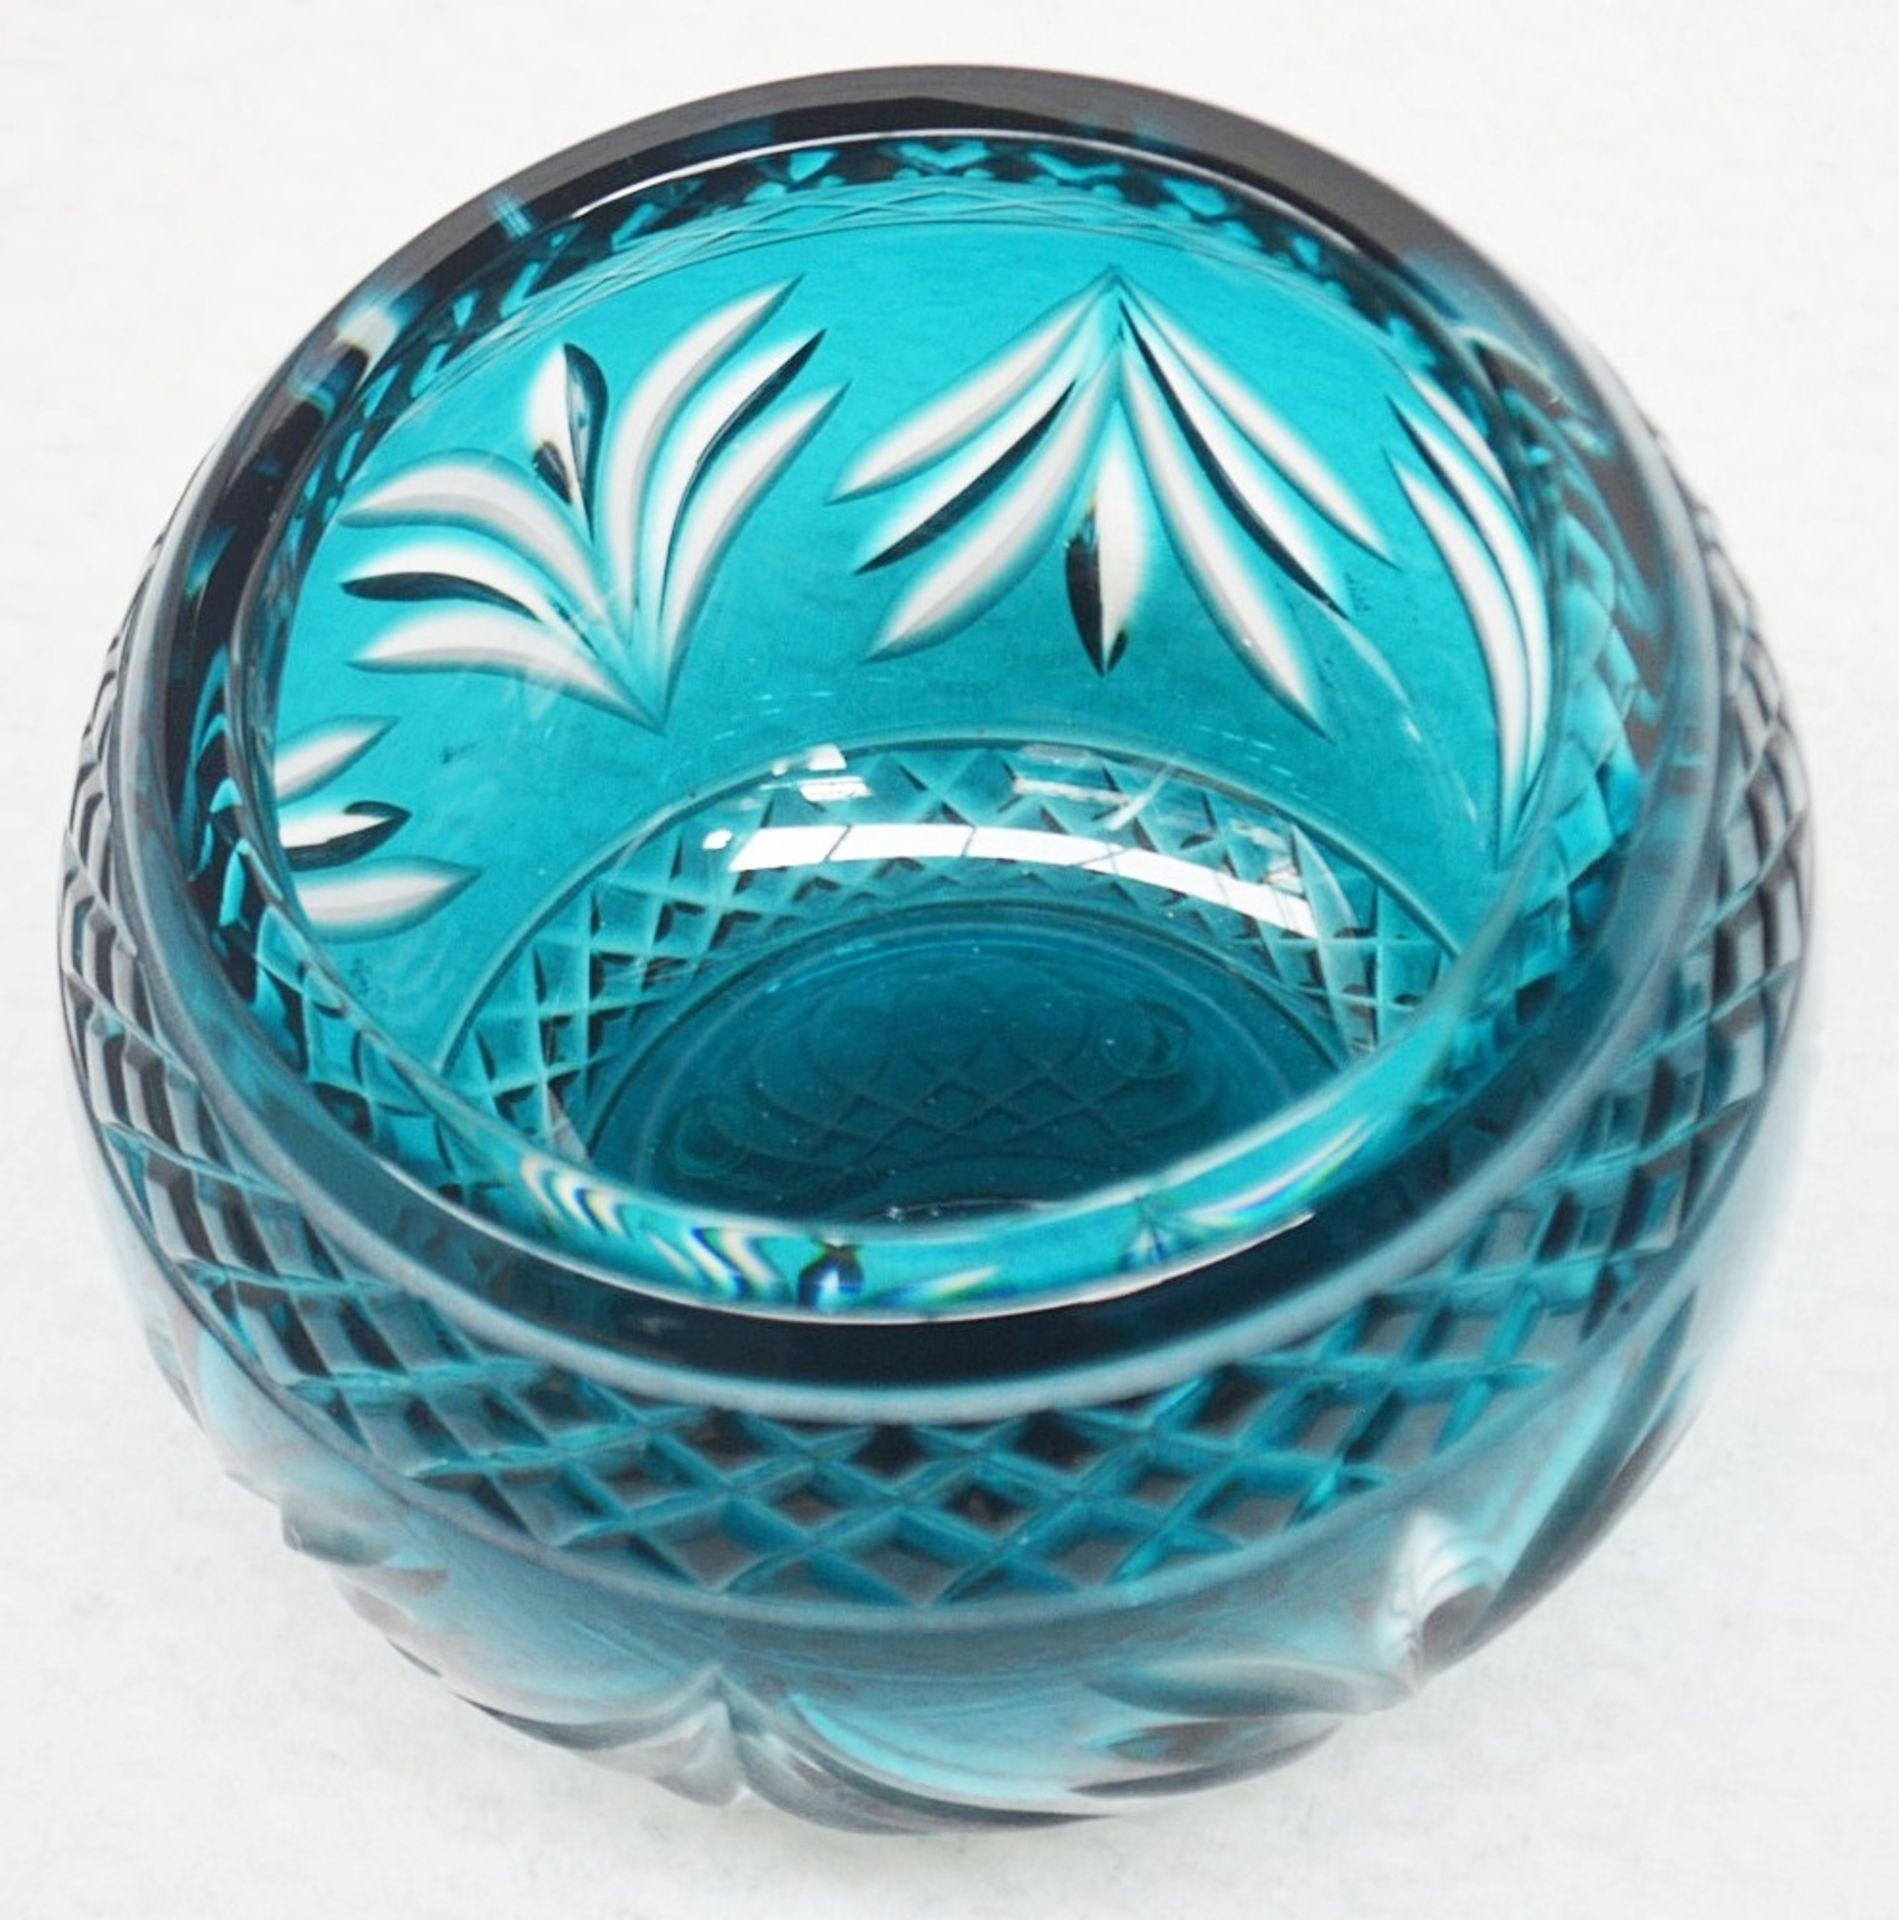 1 x BALDI 'Home Jewels' Italian Hand-crafted Artisan Crystal Coccinella Box In Turquoise - RRP £900 - Image 2 of 5